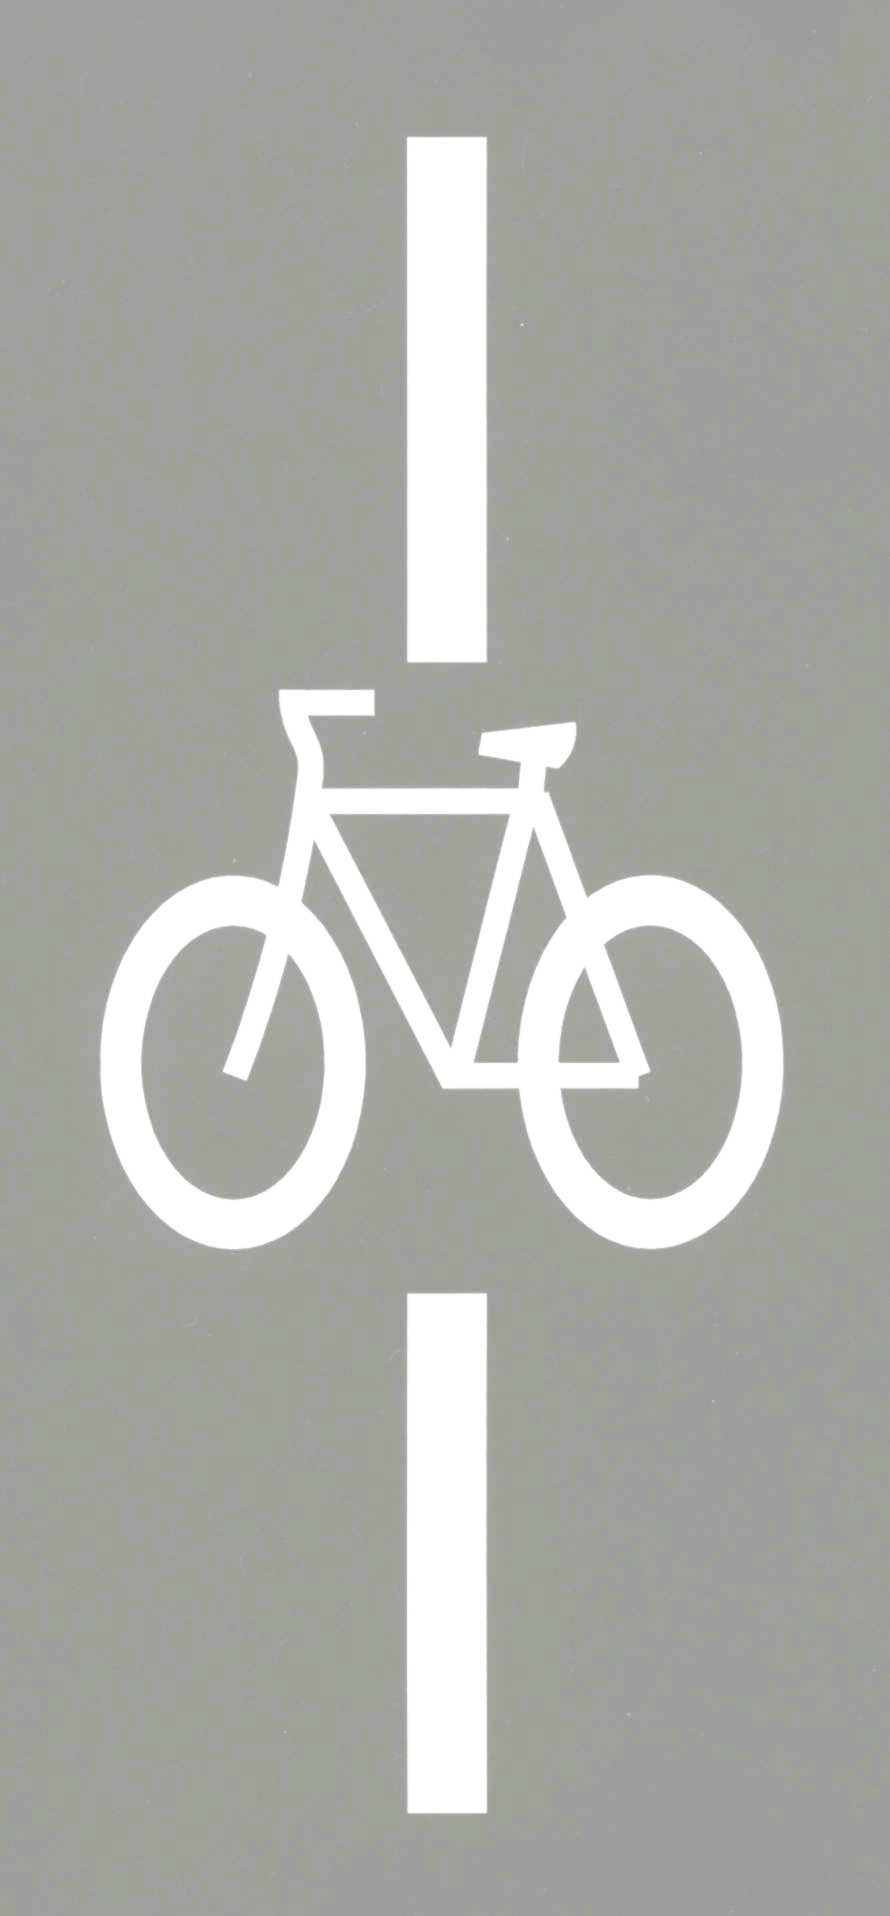 Bike Stencil for Intersection Loop Detector